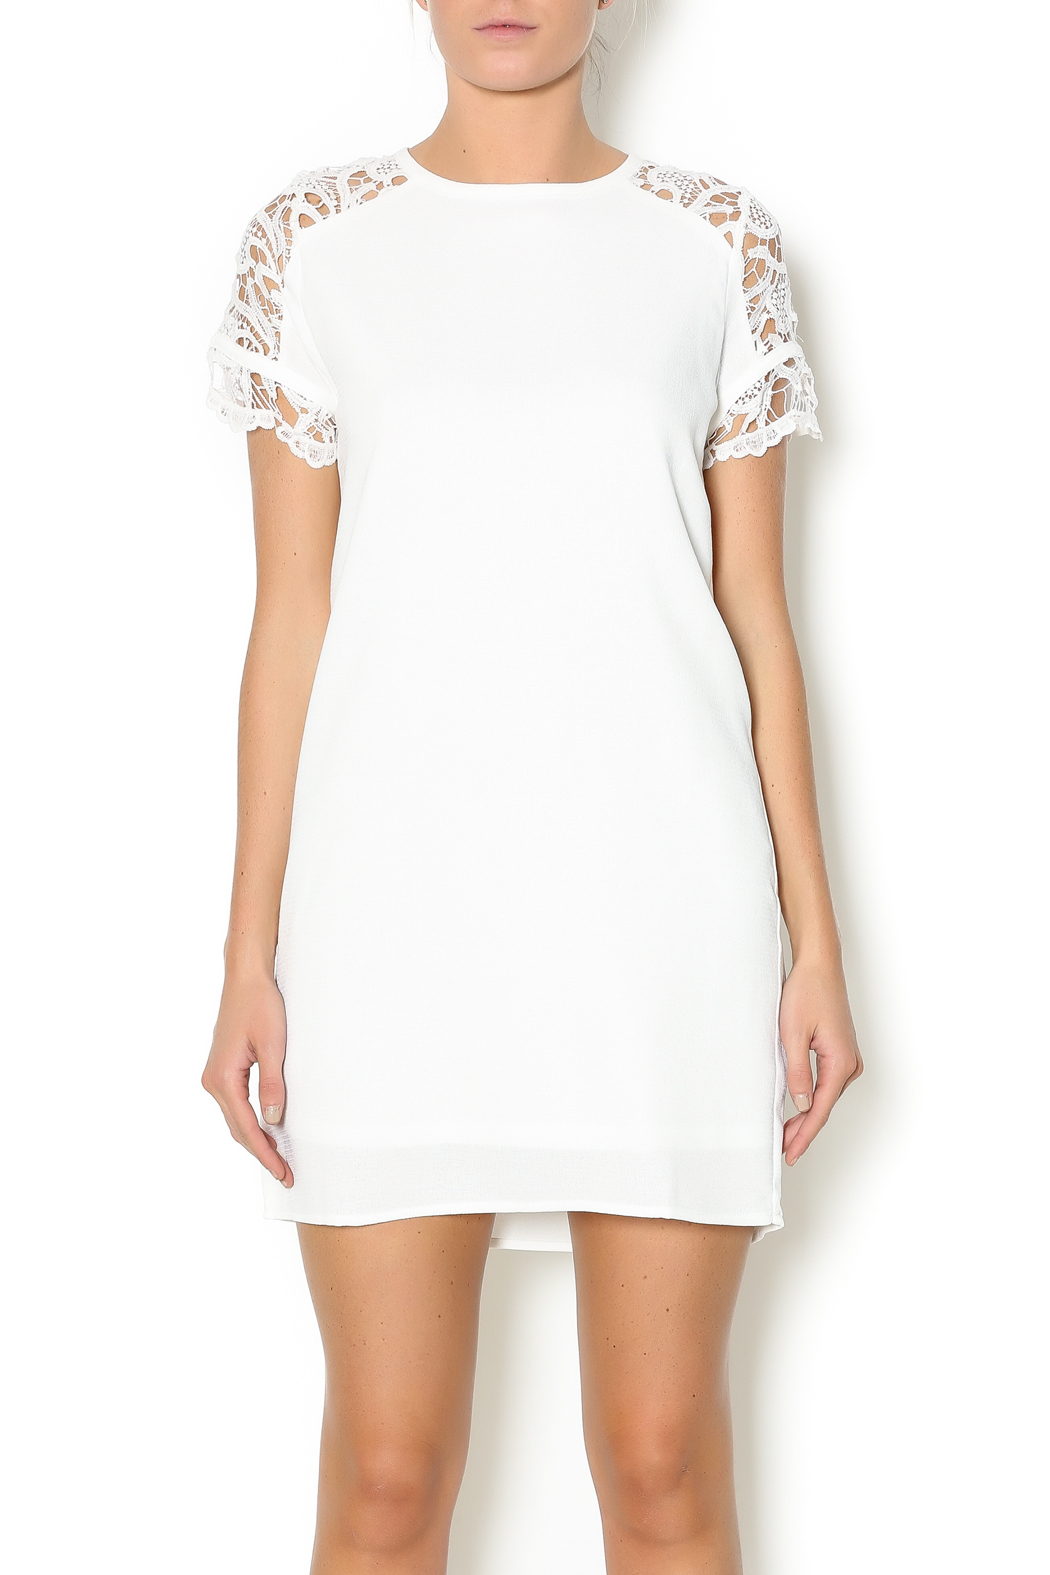 mittoshop laced shoulder dress from alabama by flaunt boutiq